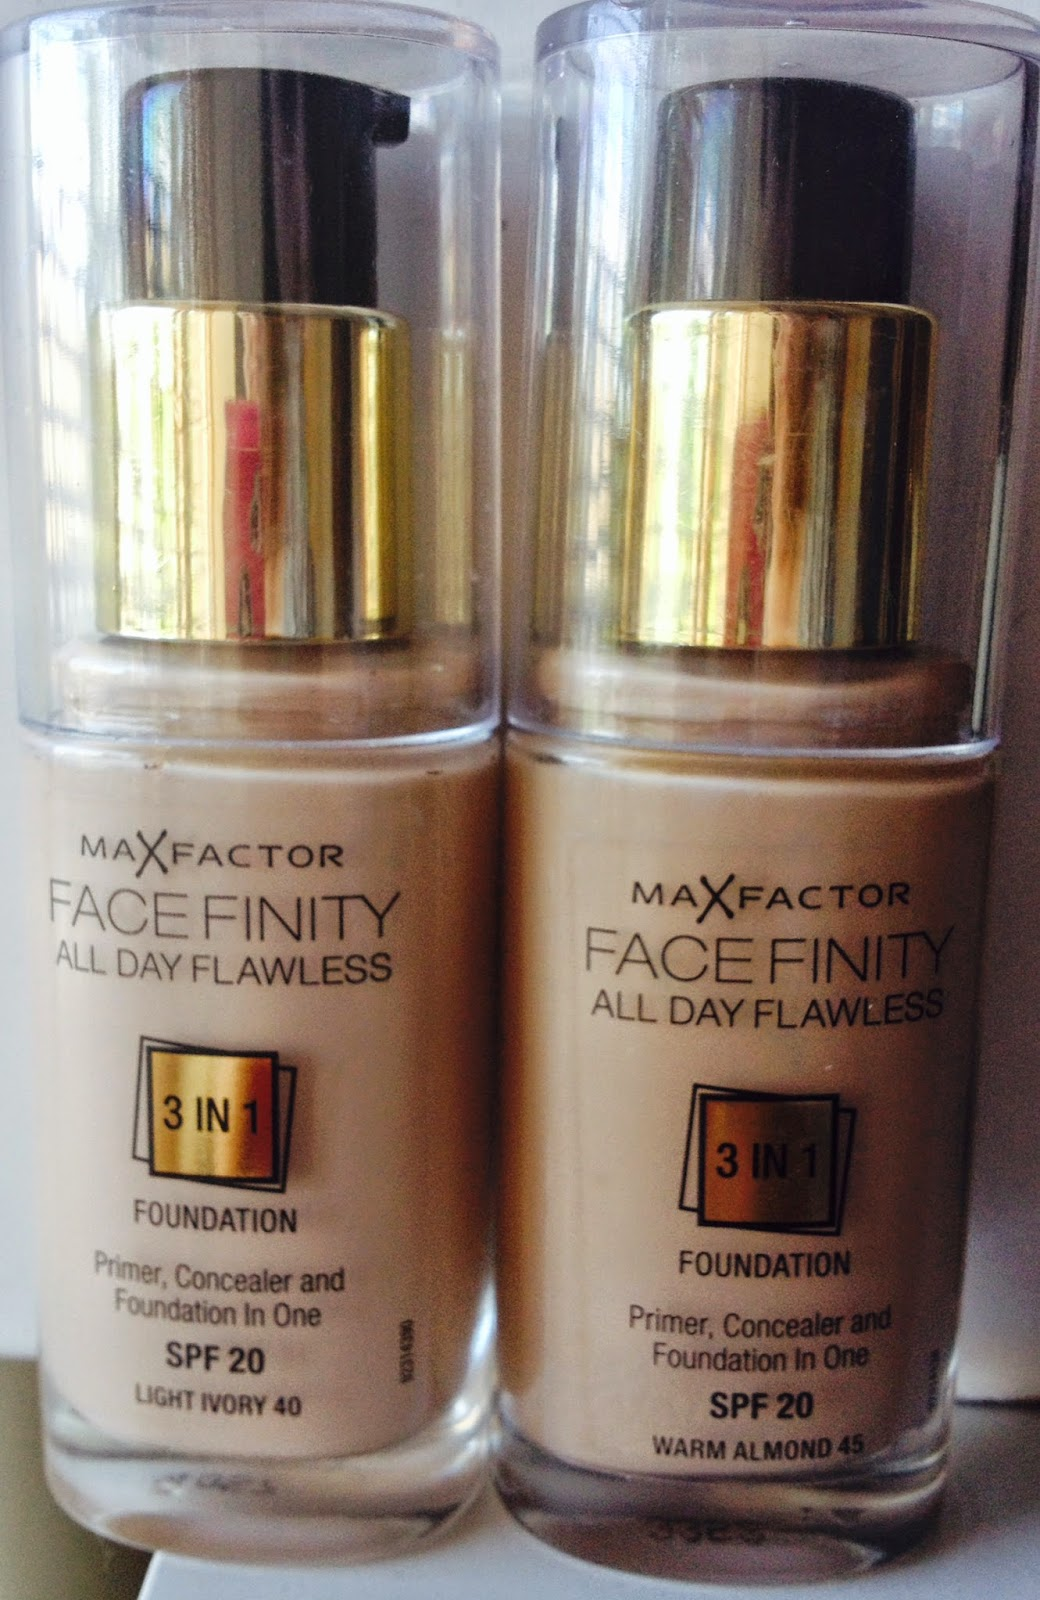 max factor facefinity all day flawless 3 in 1 foundation review and swatches light ivory warm. Black Bedroom Furniture Sets. Home Design Ideas